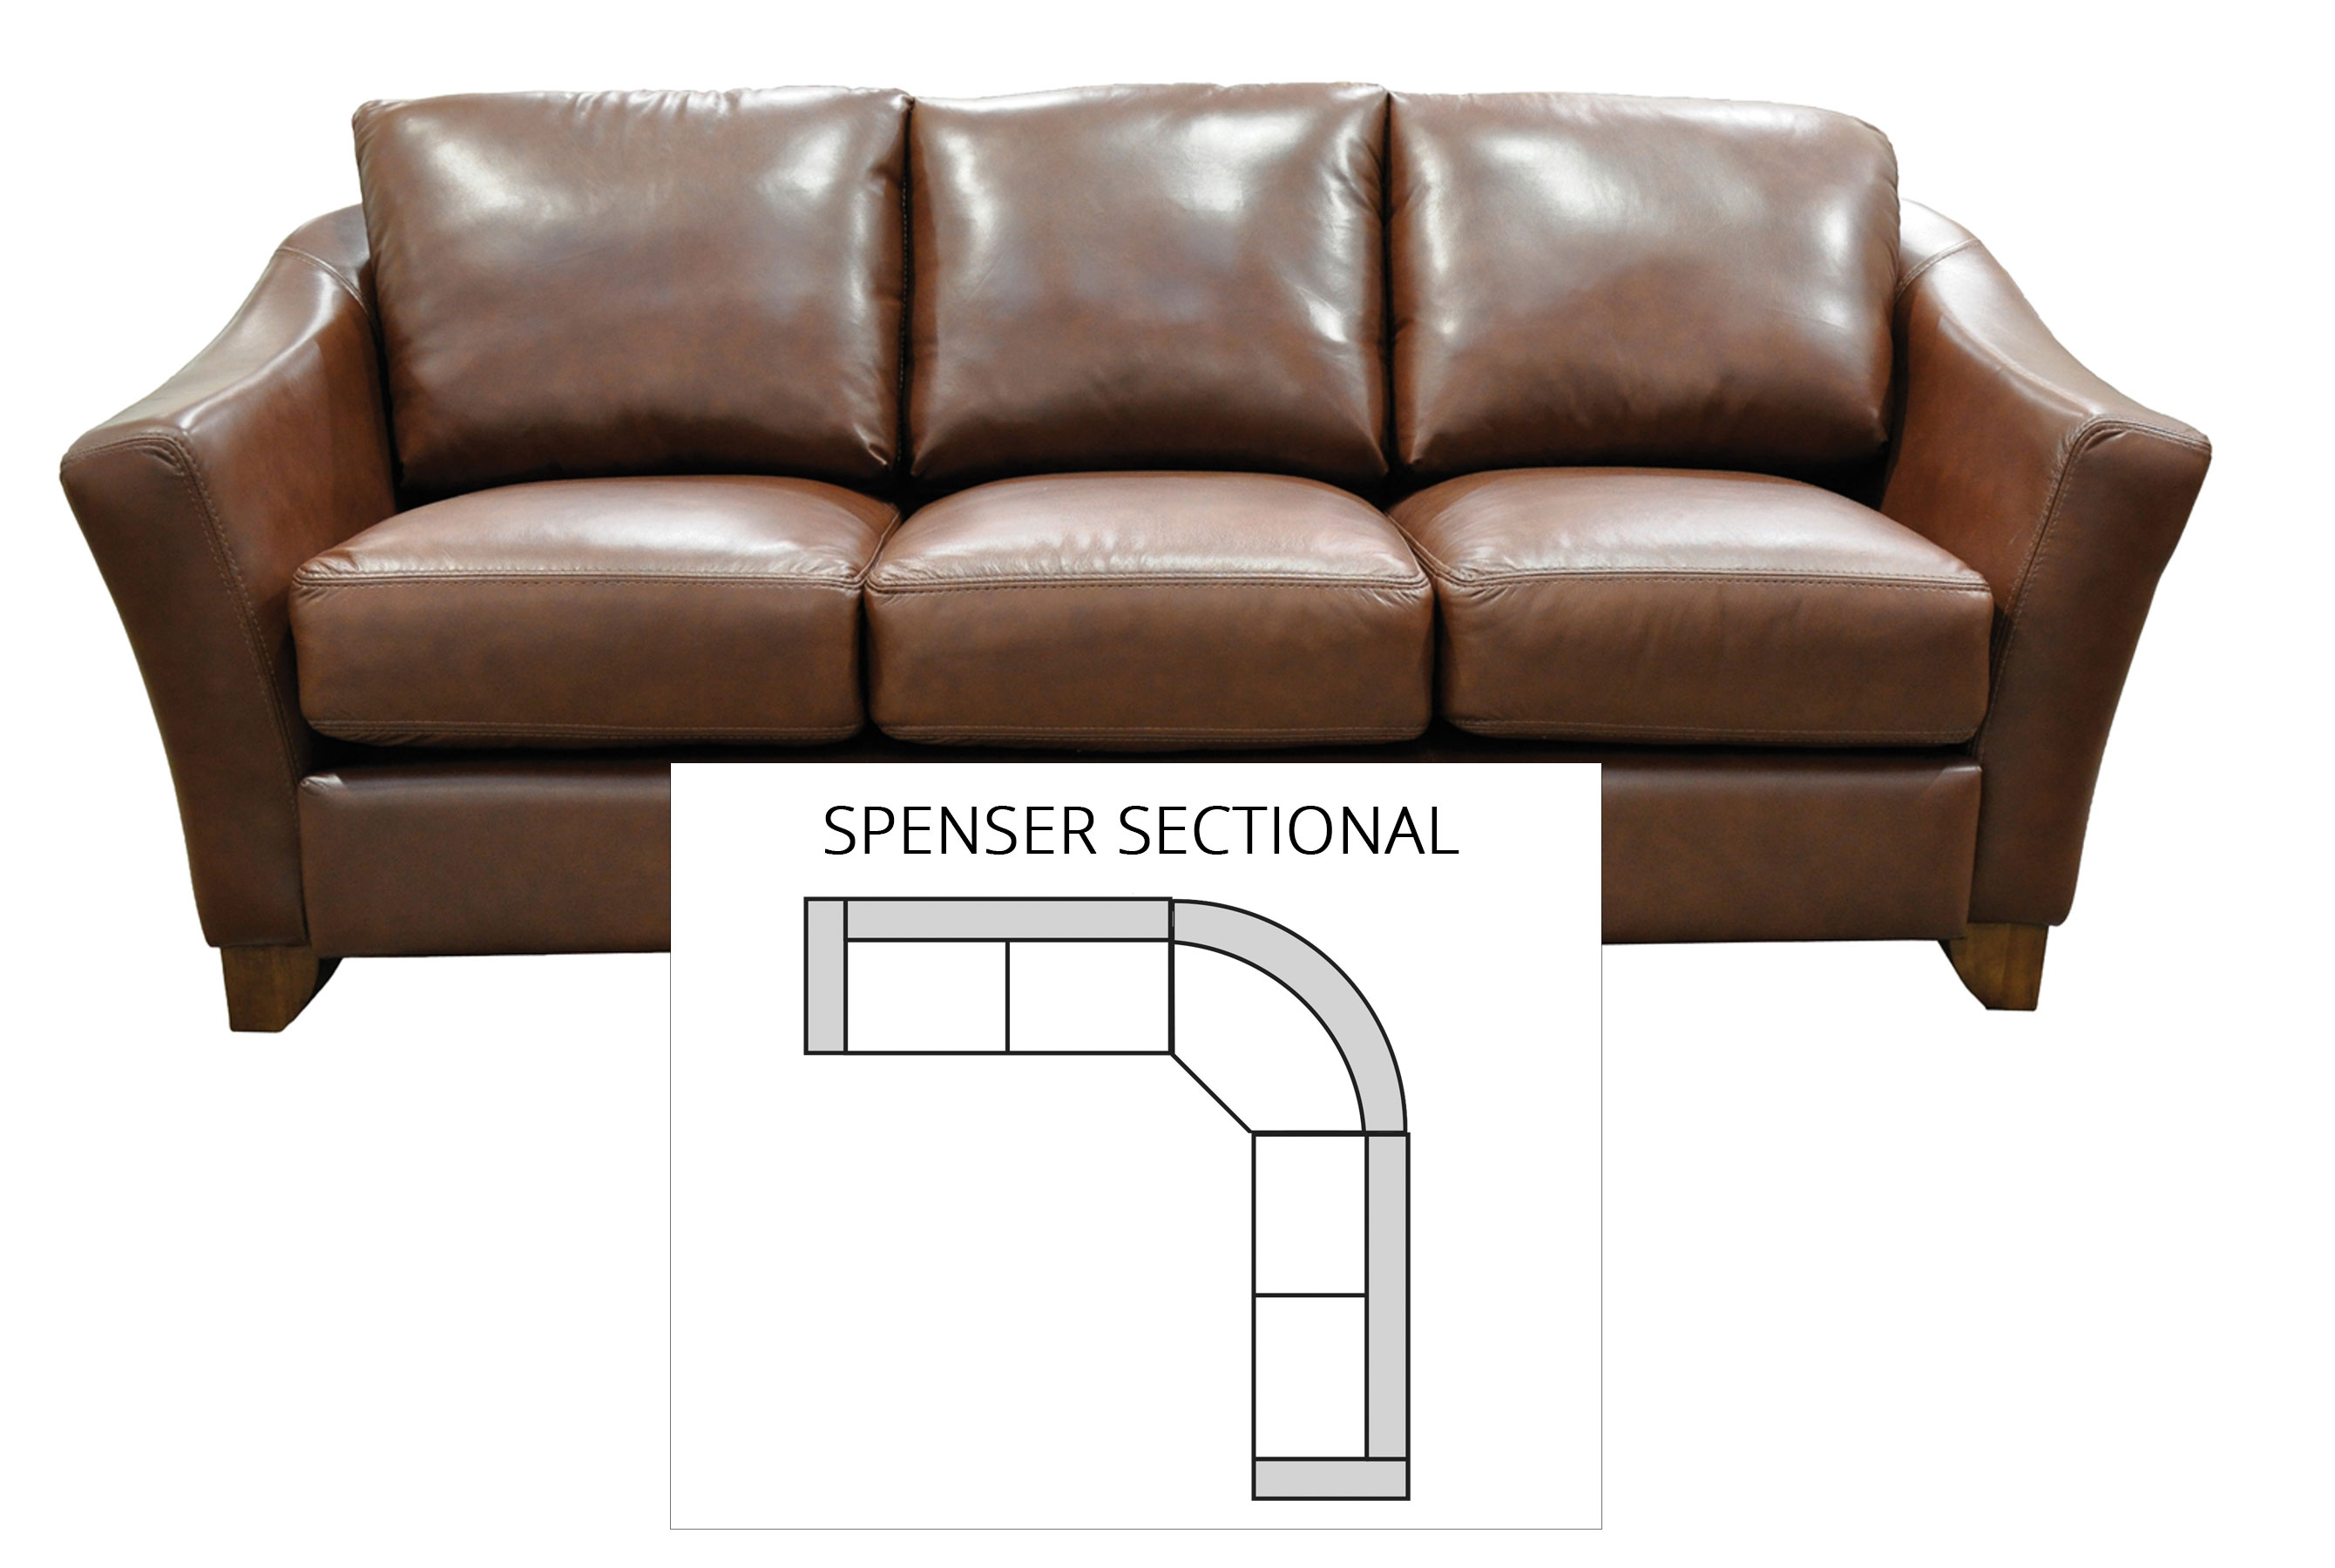 Enjoyable Spencer Sectional All Leather Sofas And Sectionals Inzonedesignstudio Interior Chair Design Inzonedesignstudiocom